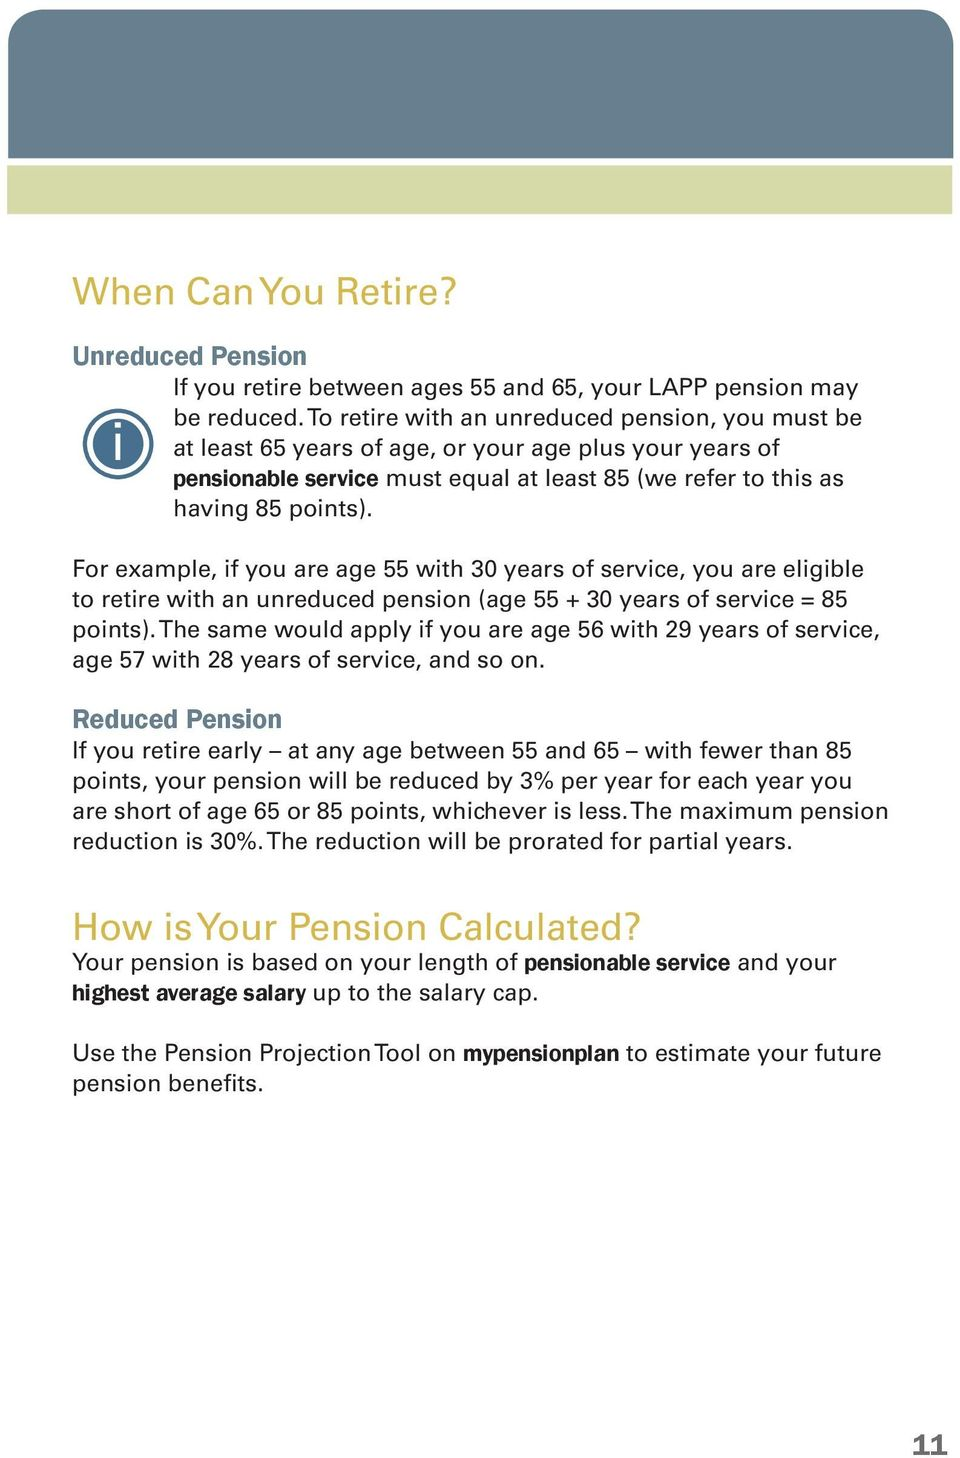 For example, if you are age 55 with 30 years of service, you are eligible to retire with an unreduced pension (age 55 + 30 years of service = 85 points).